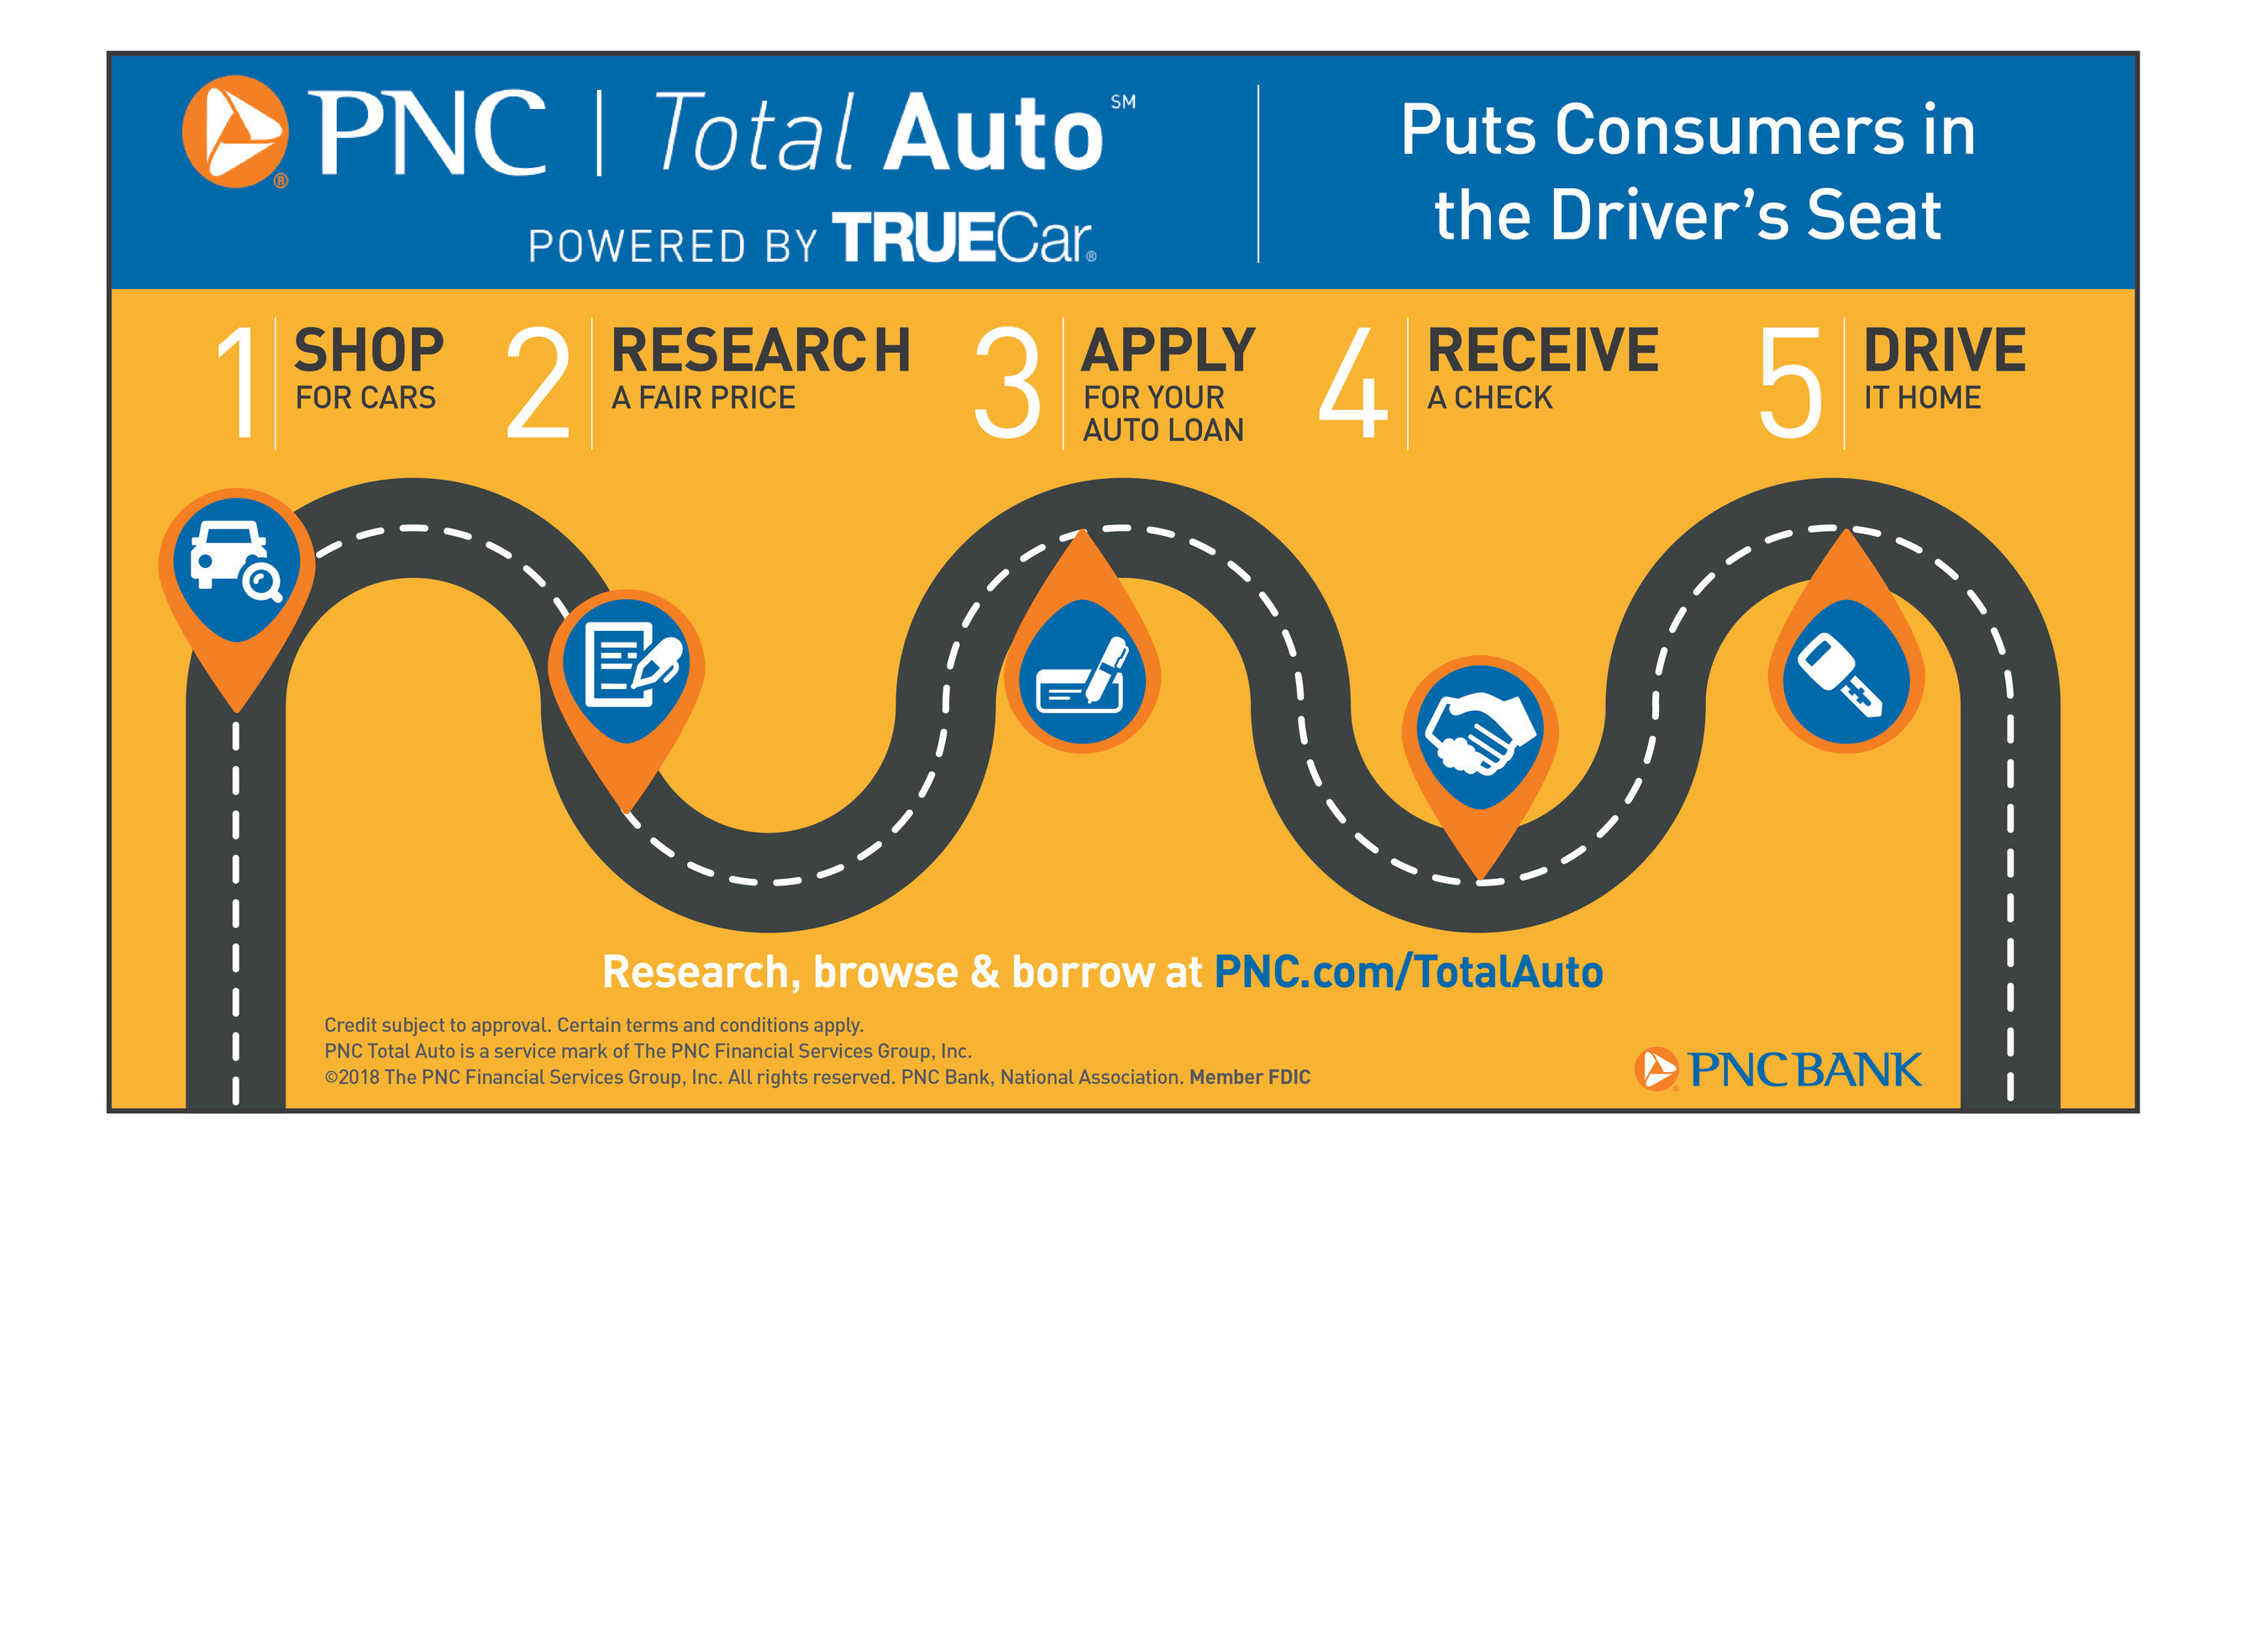 Pnc Car Loan >> PNC Bank Puts Car Buyers In The Driver's Seat With New Digital Auto Shopping Experience | World ...